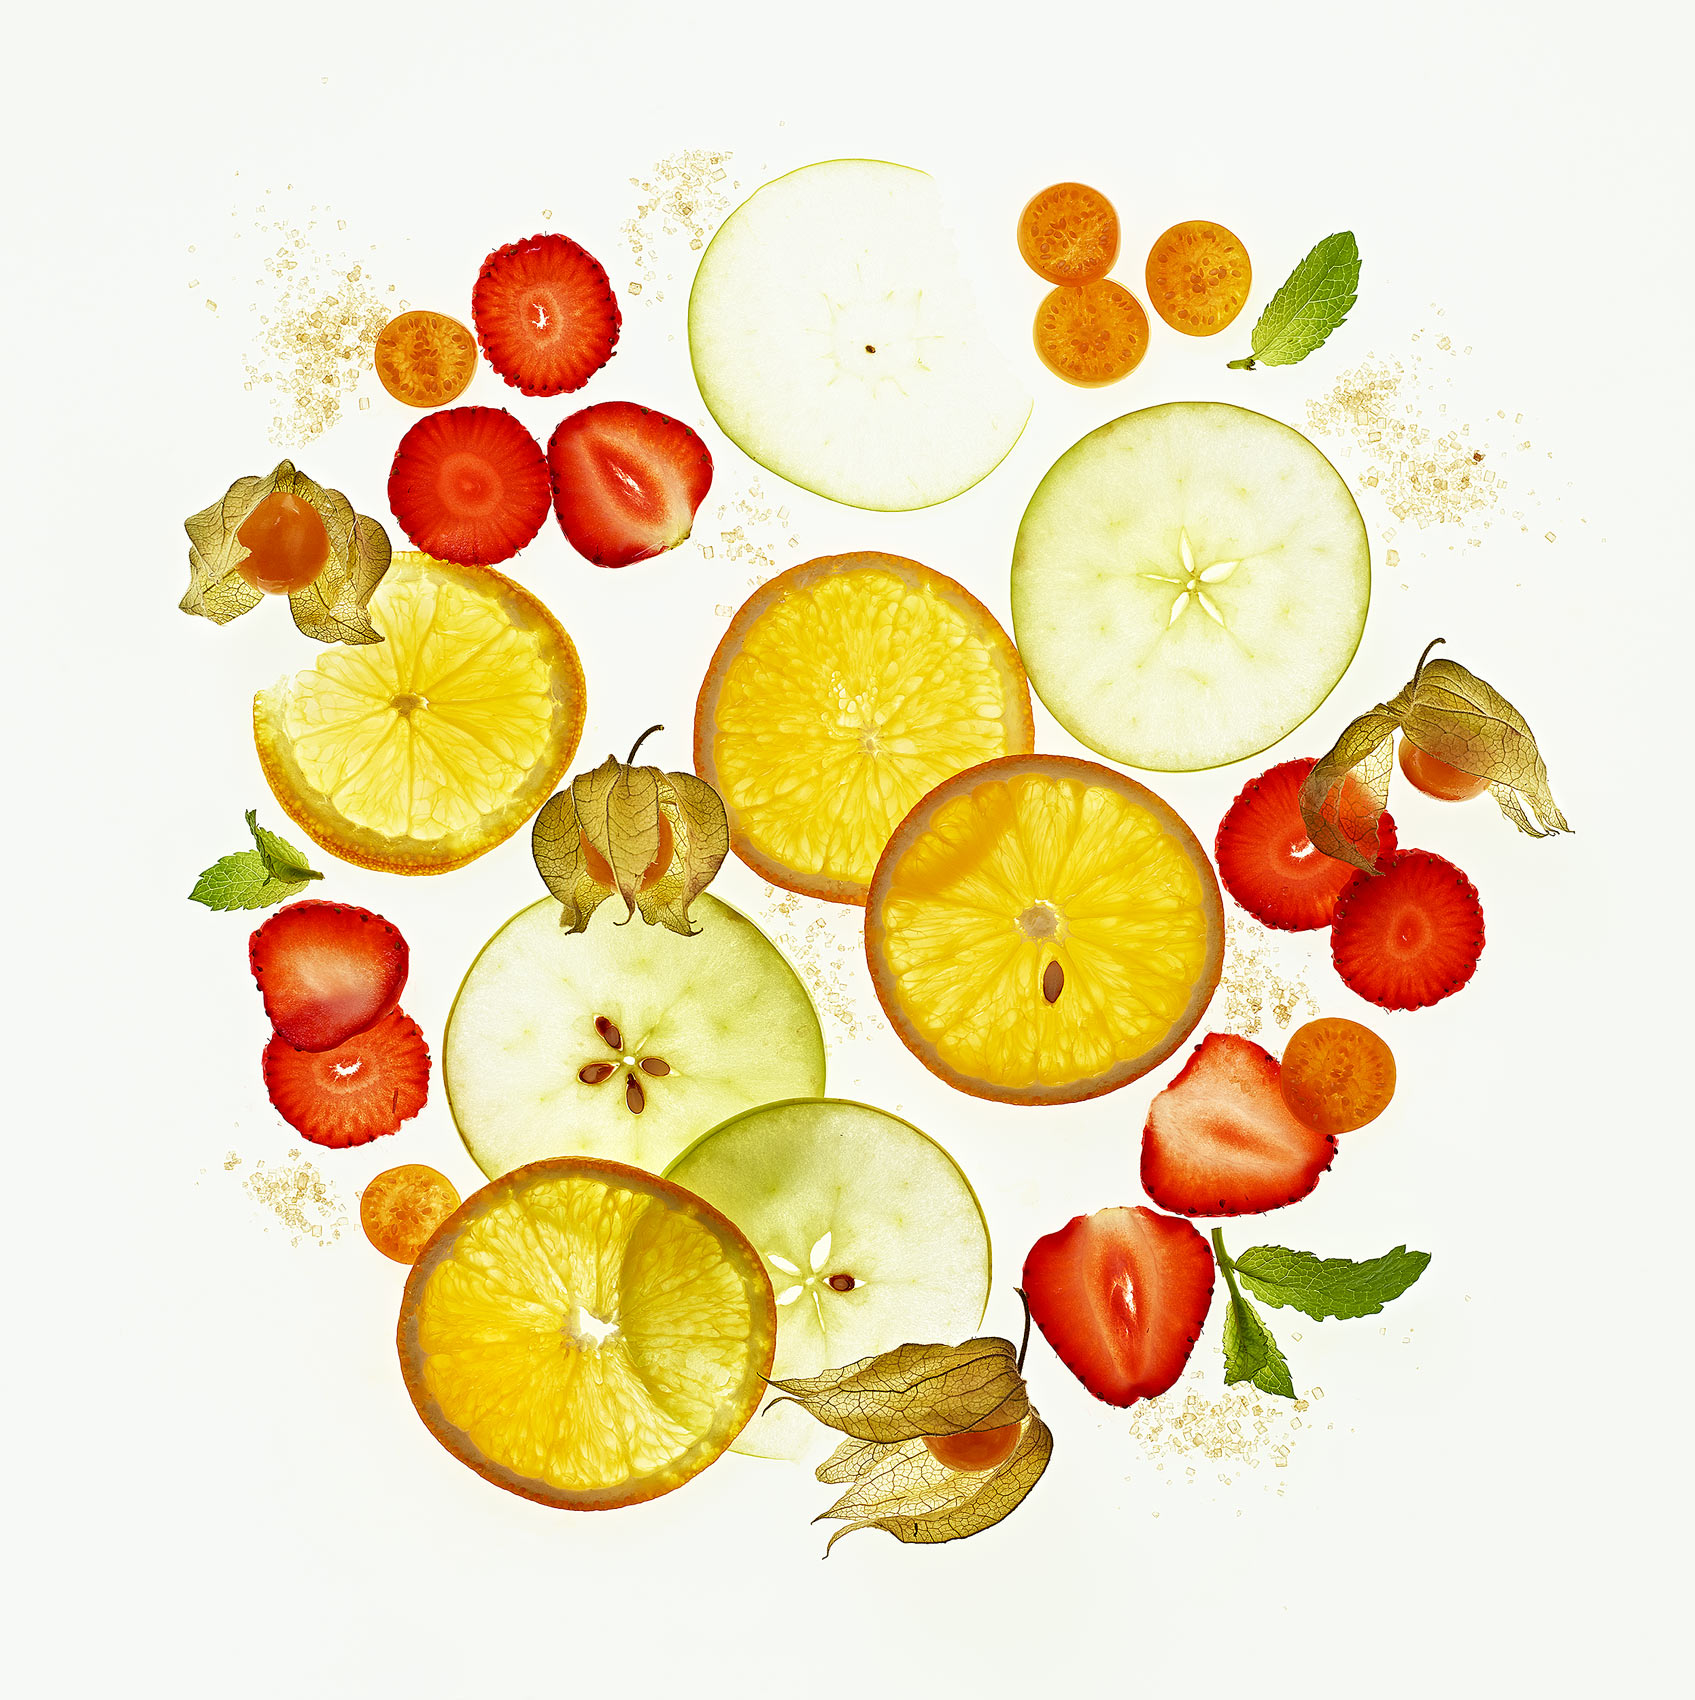 a fruit salad of oranges apples strawberies and cape gooseberry laid out on a backlit white background